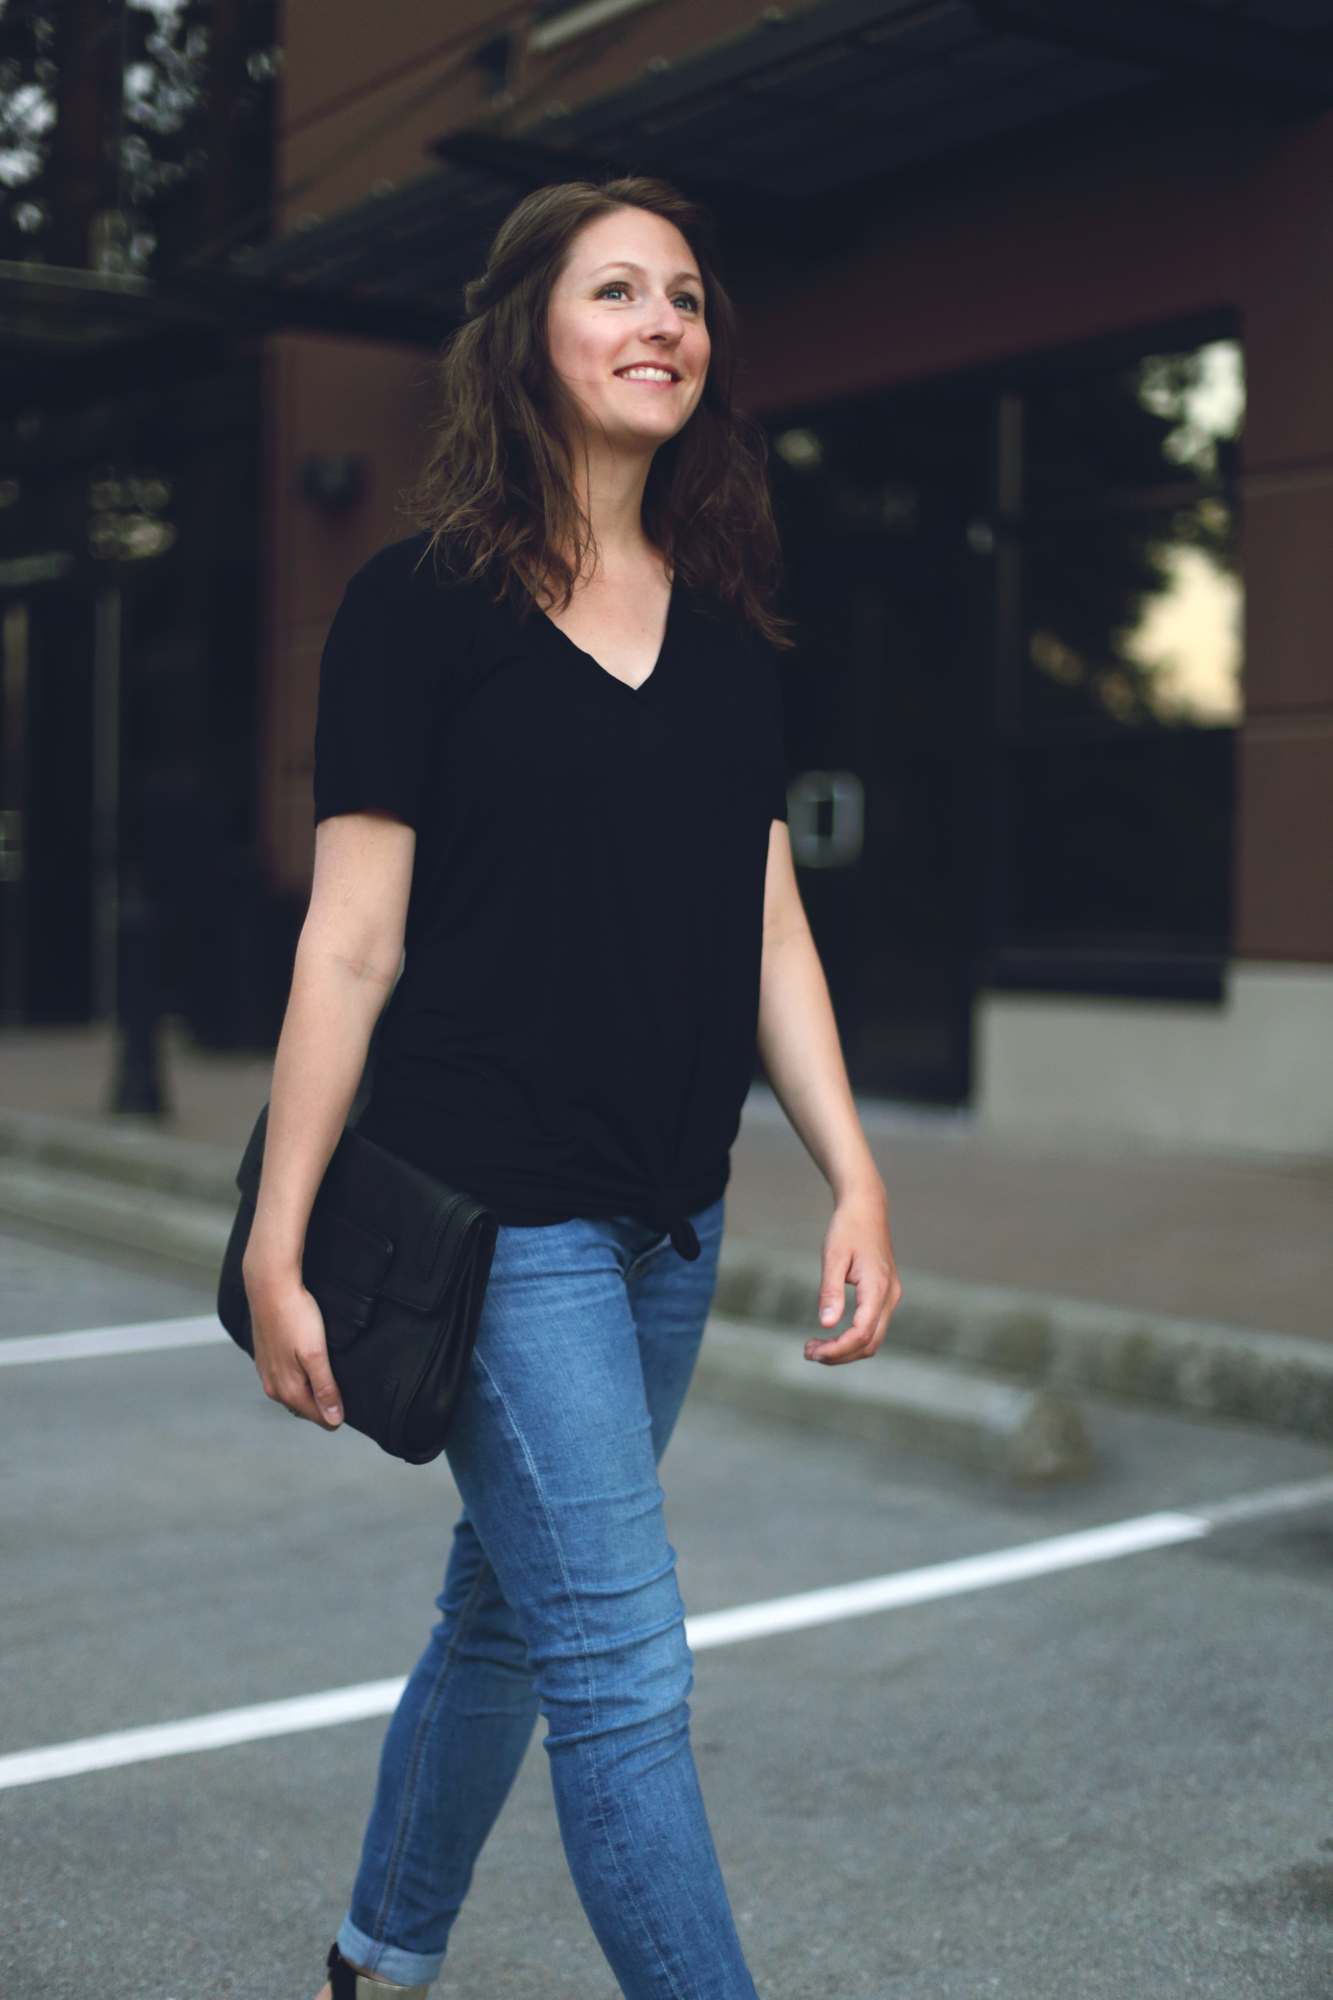 Minimalist street style chic outfit: black t-shirt, skinny jeans, and an oversized clutch.